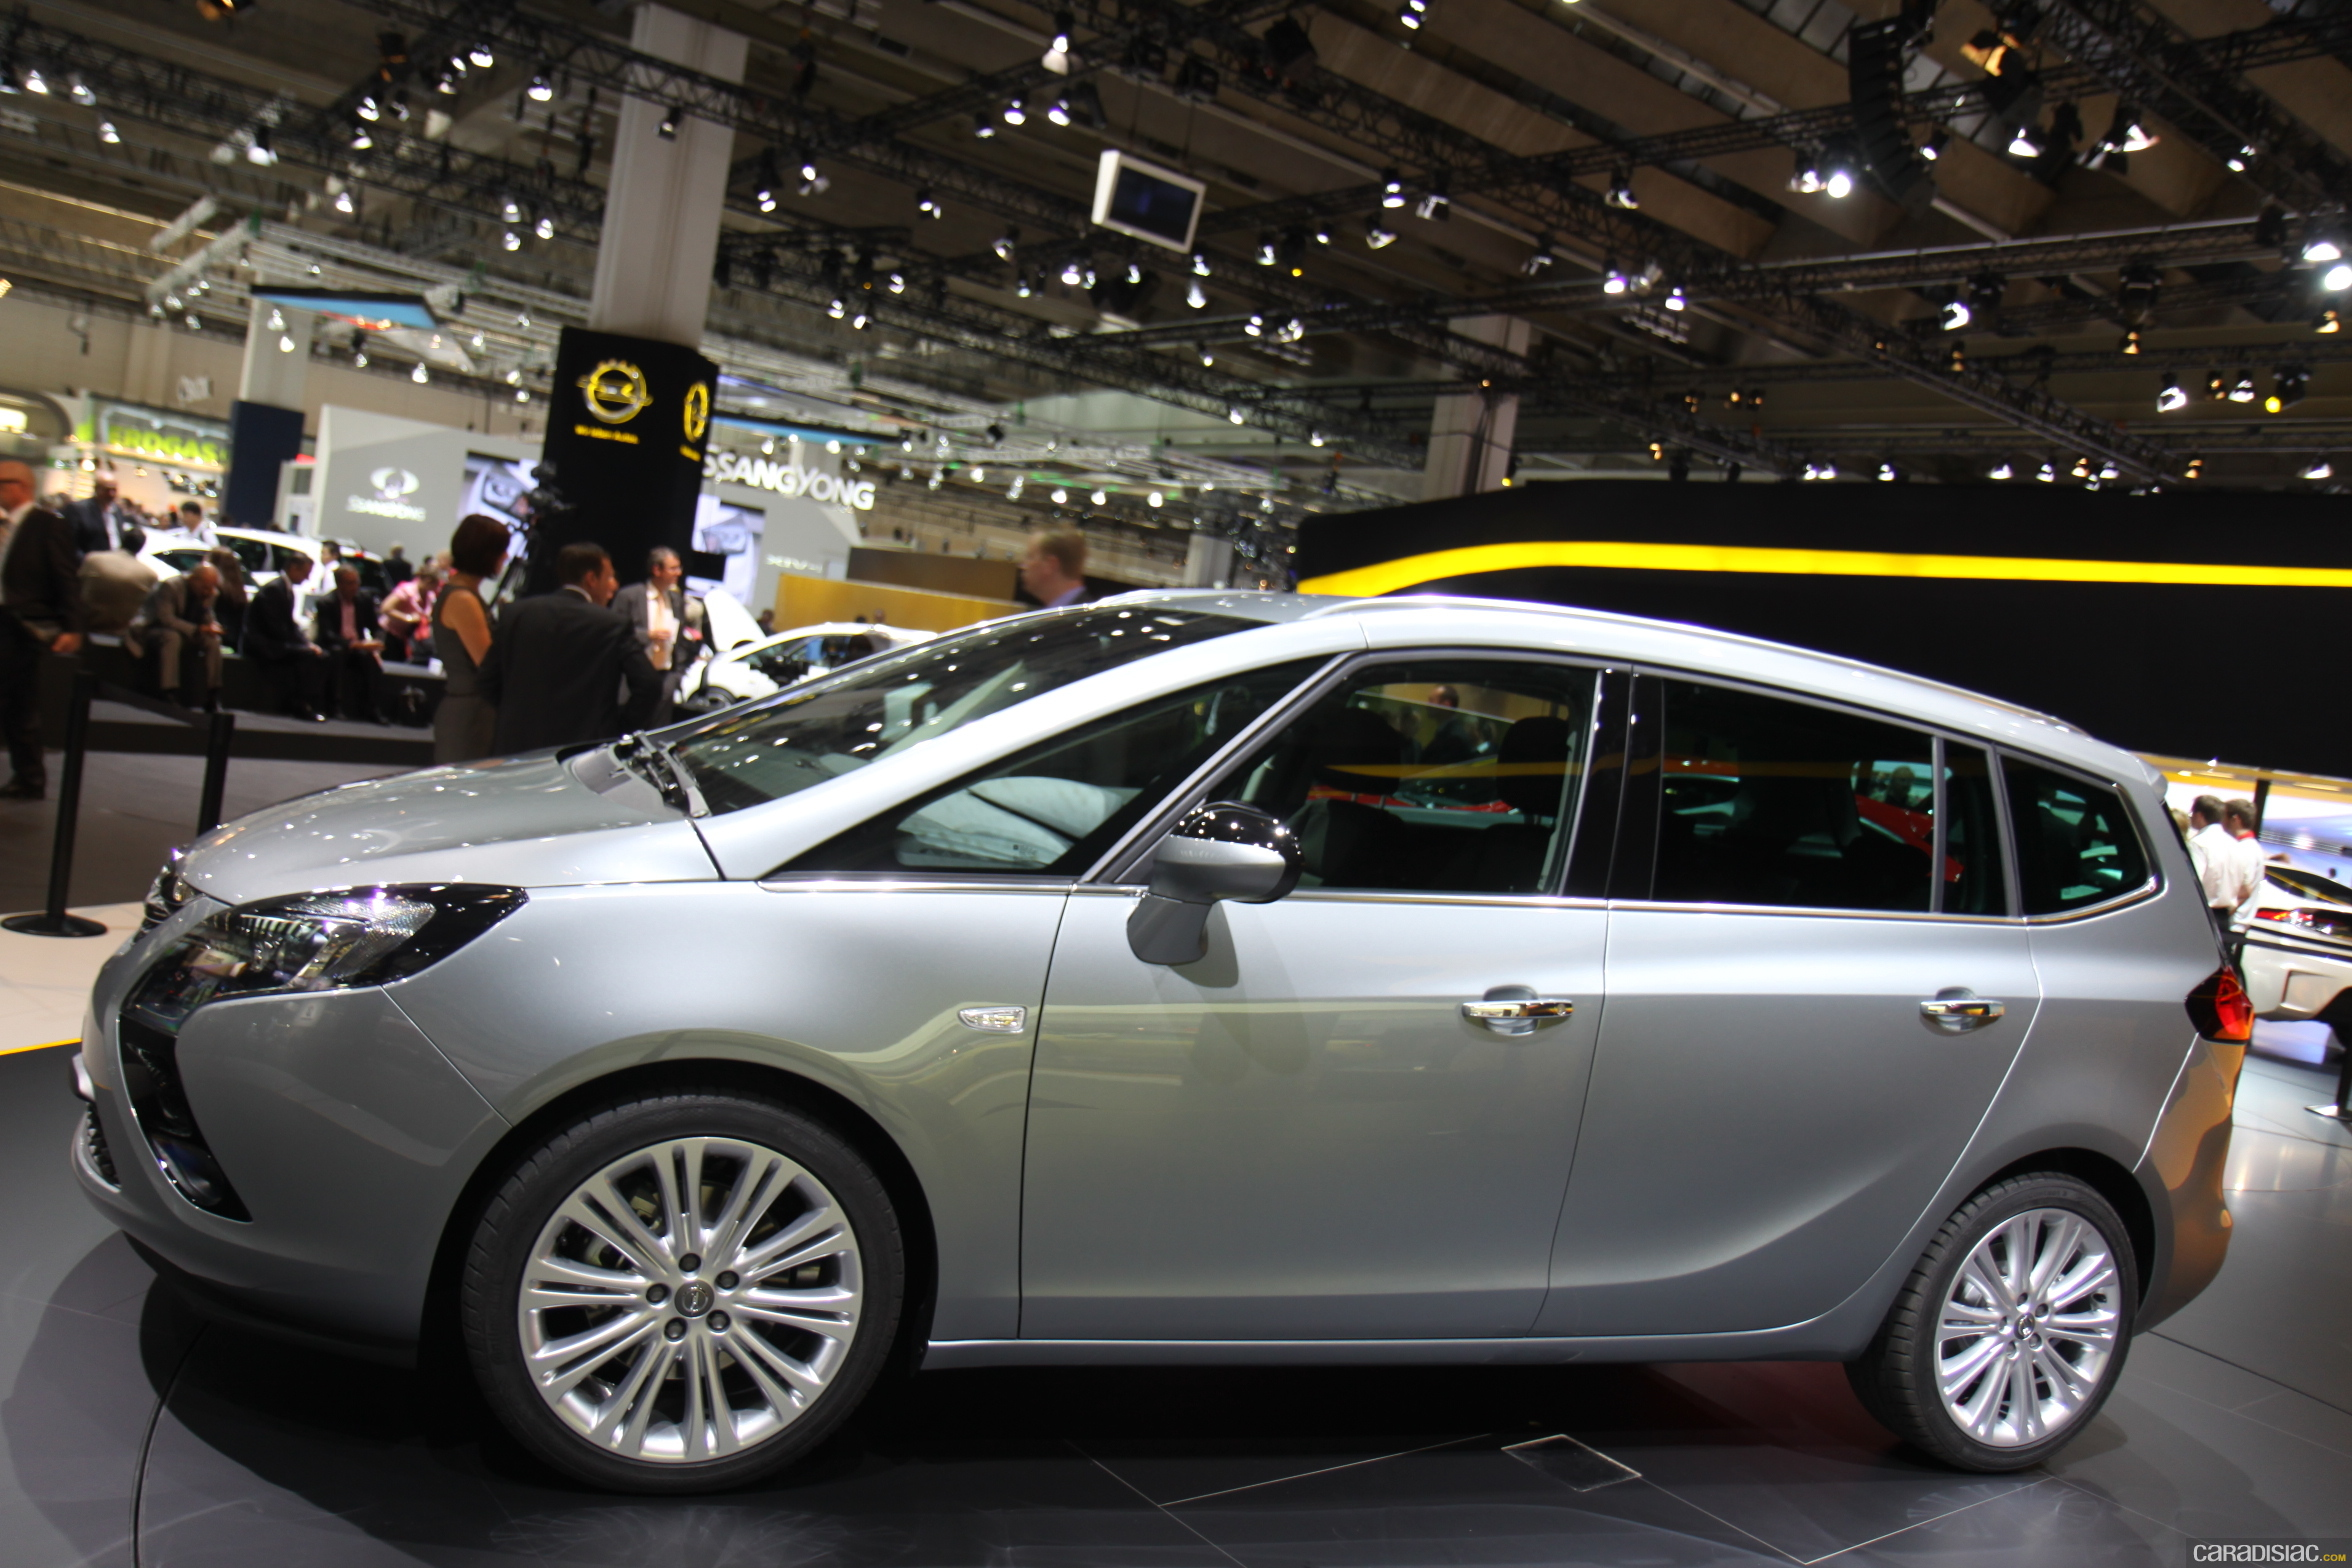 2018 Opel Zafira Tourer Concept photo - 5